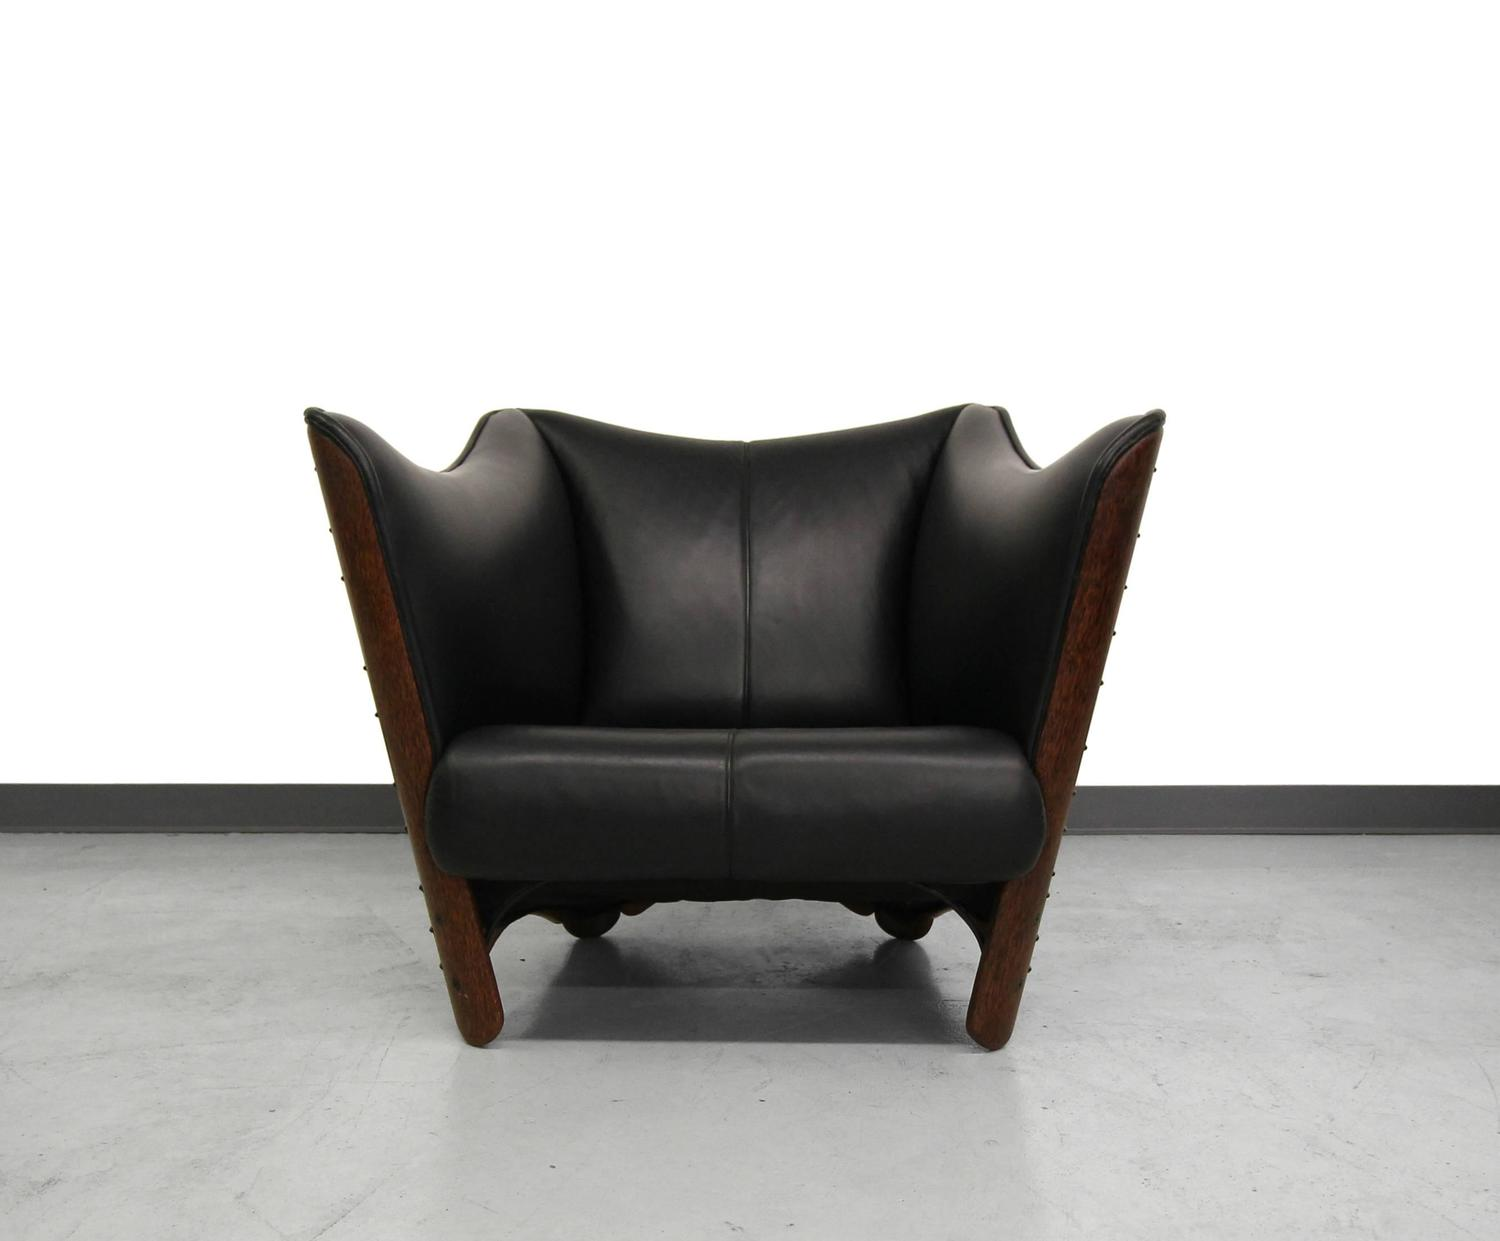 Pacific Green Leather Furniture 78